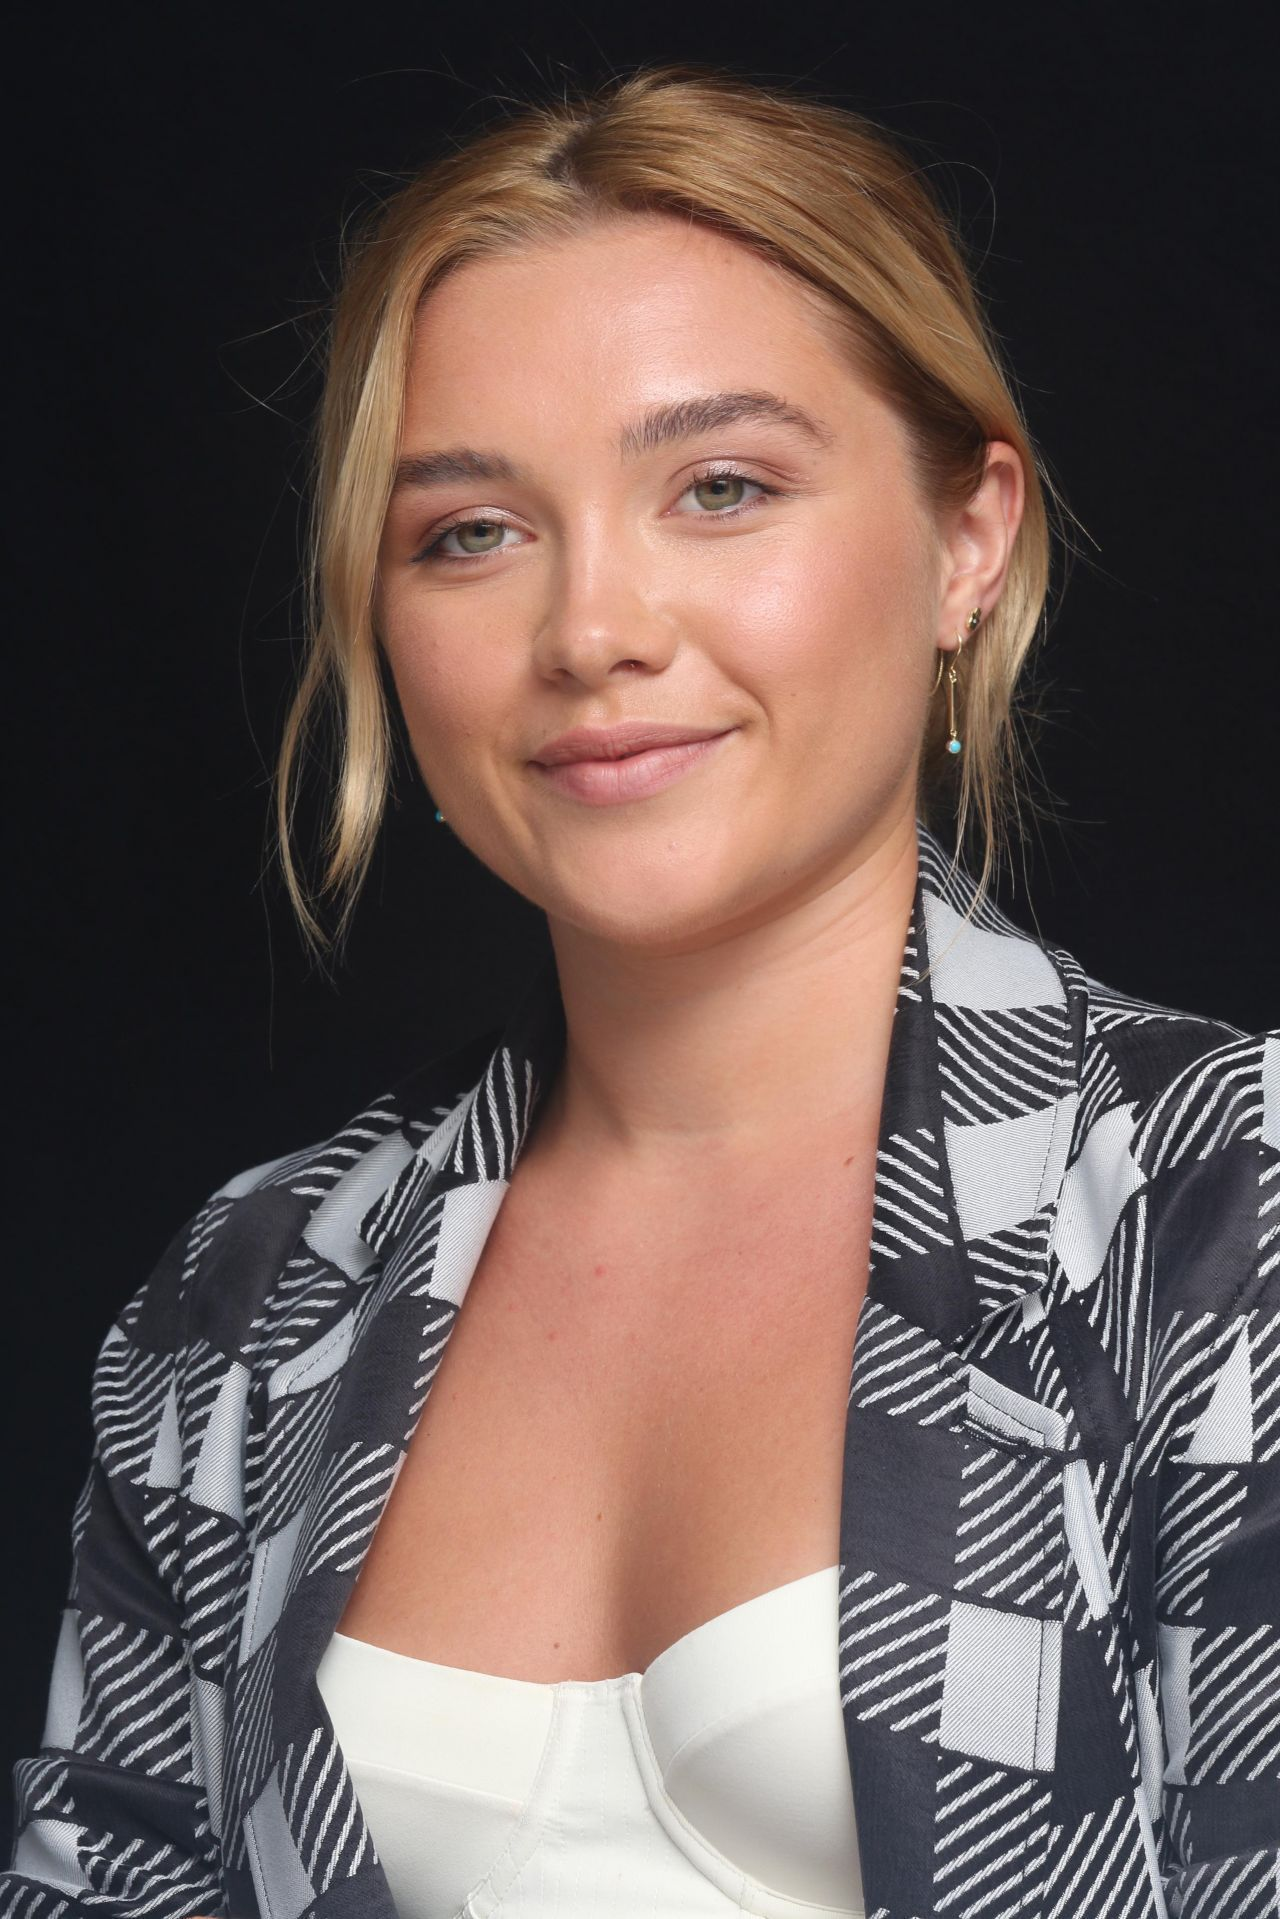 Fotos Florence Pugh nudes (45 photo), Tits, Hot, Feet, cameltoe 2018